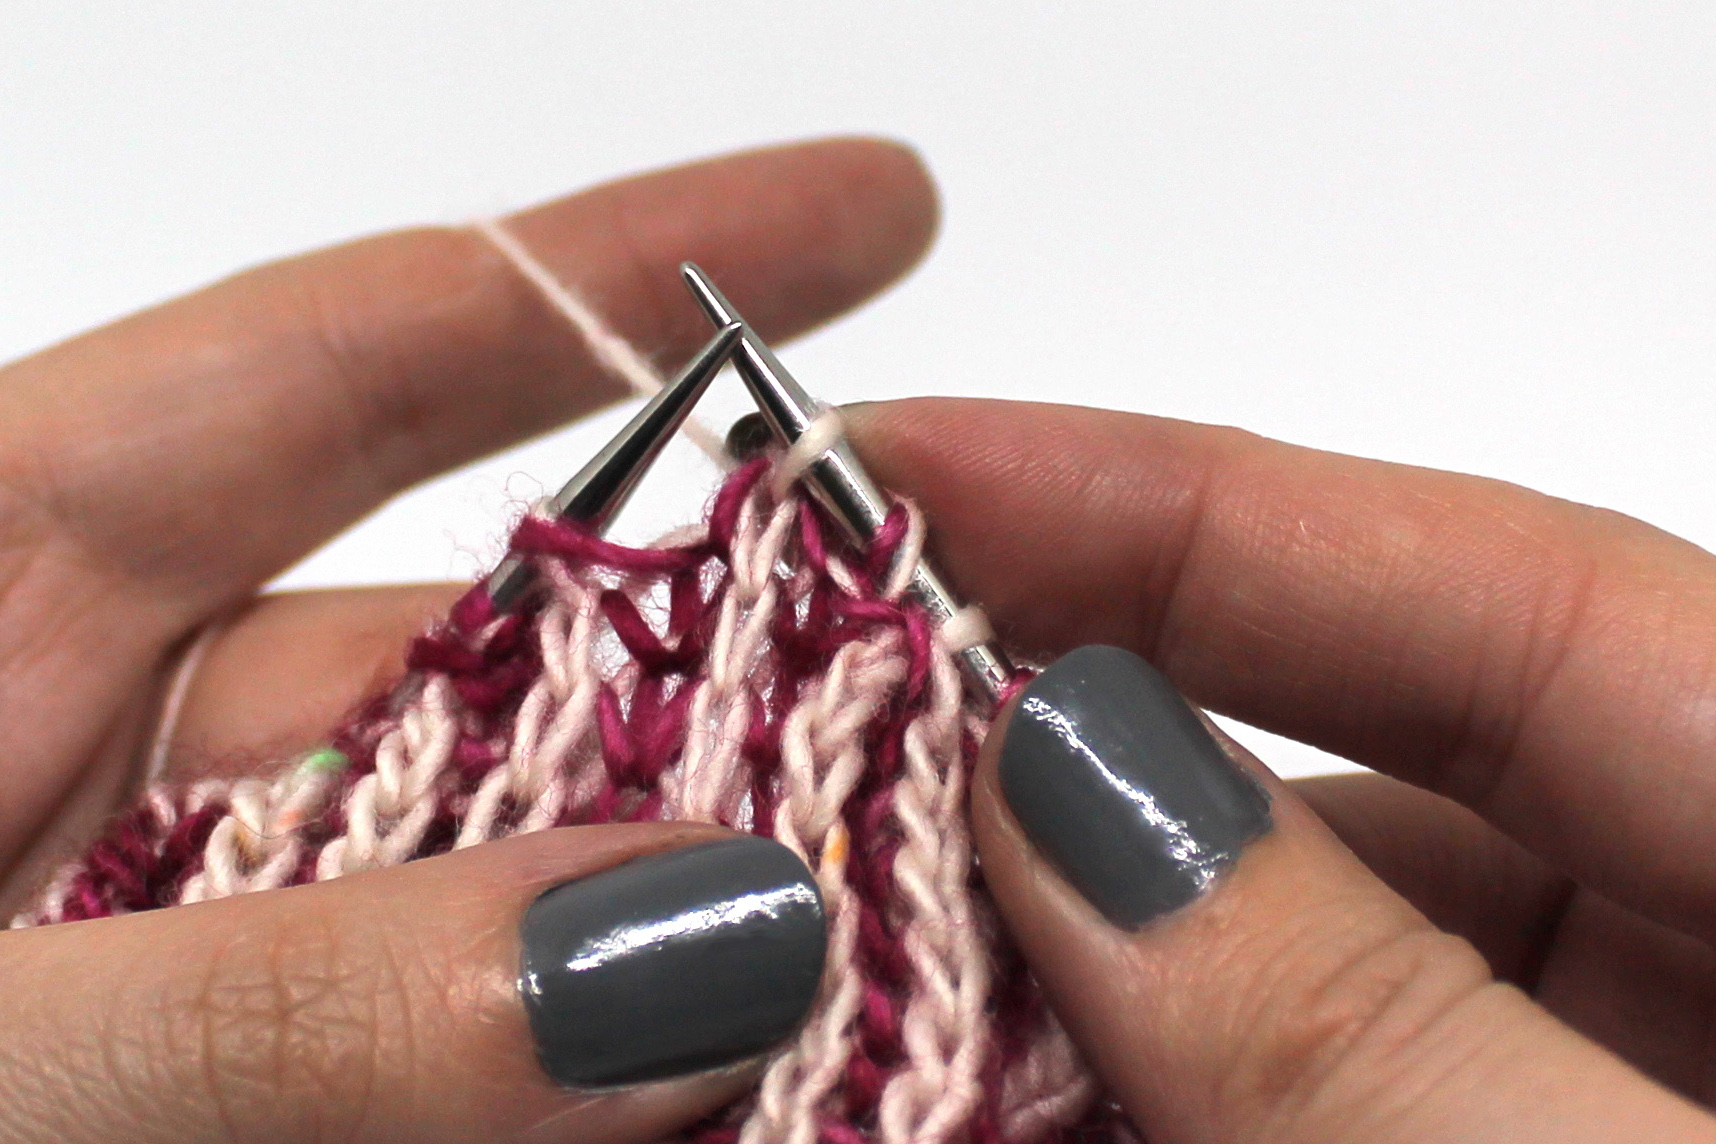 The first two stitches on the right hand needle have been knitted together through the back loop.